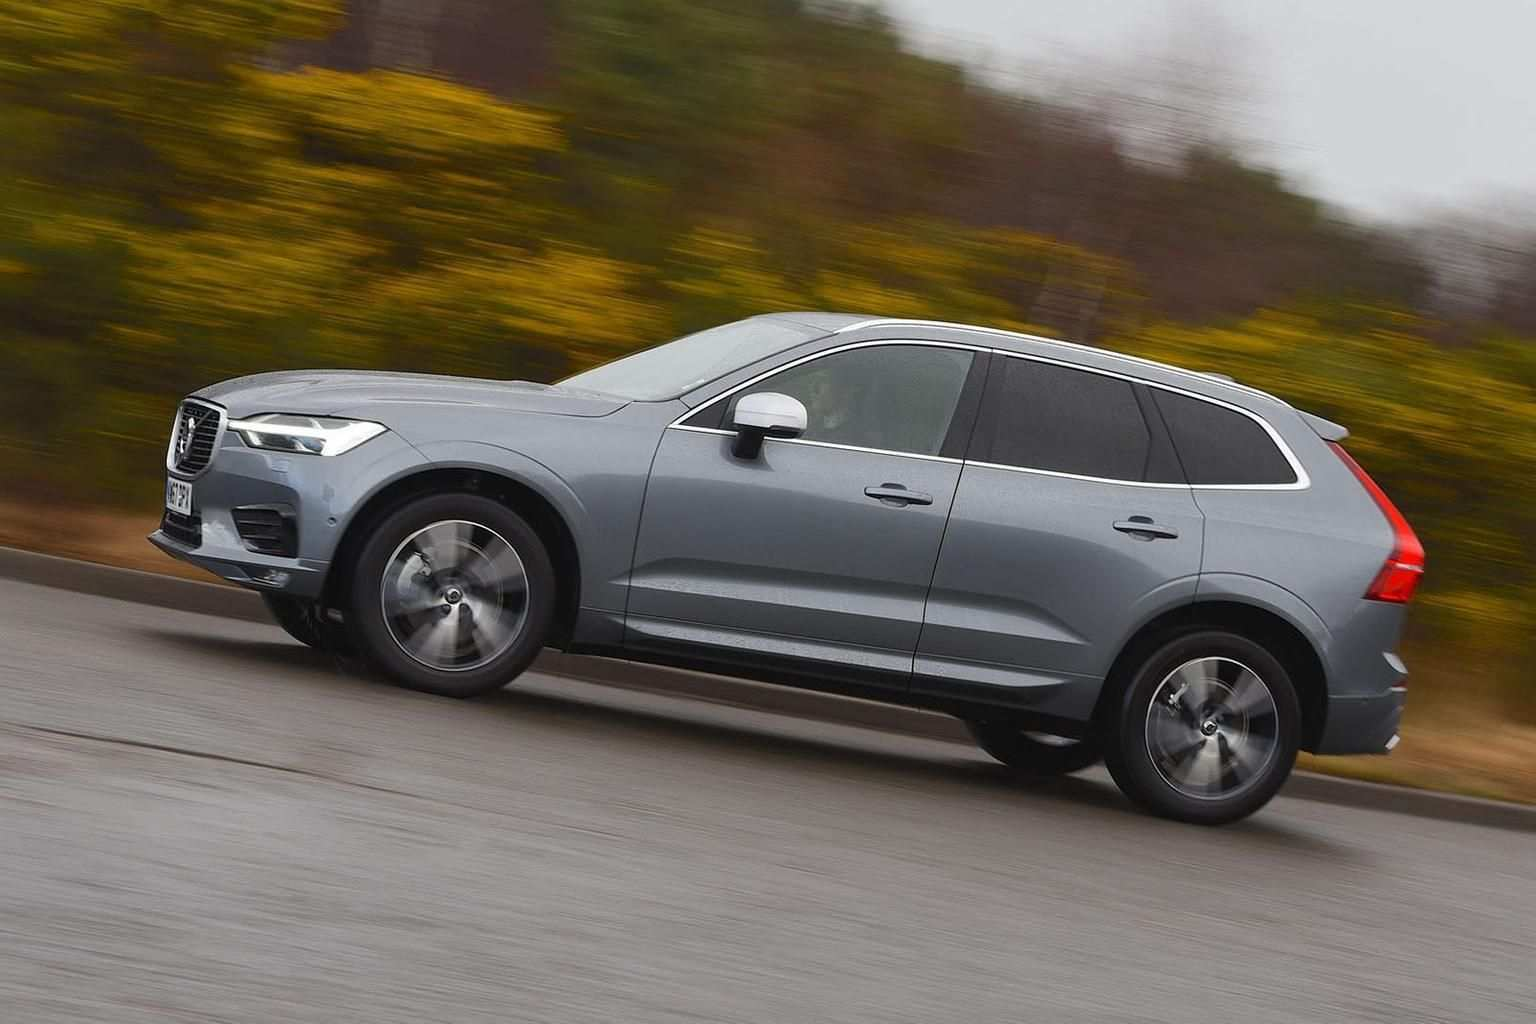 77 Concept of New Volvo Xc60 2019 Manual Specs Prices for New Volvo Xc60 2019 Manual Specs